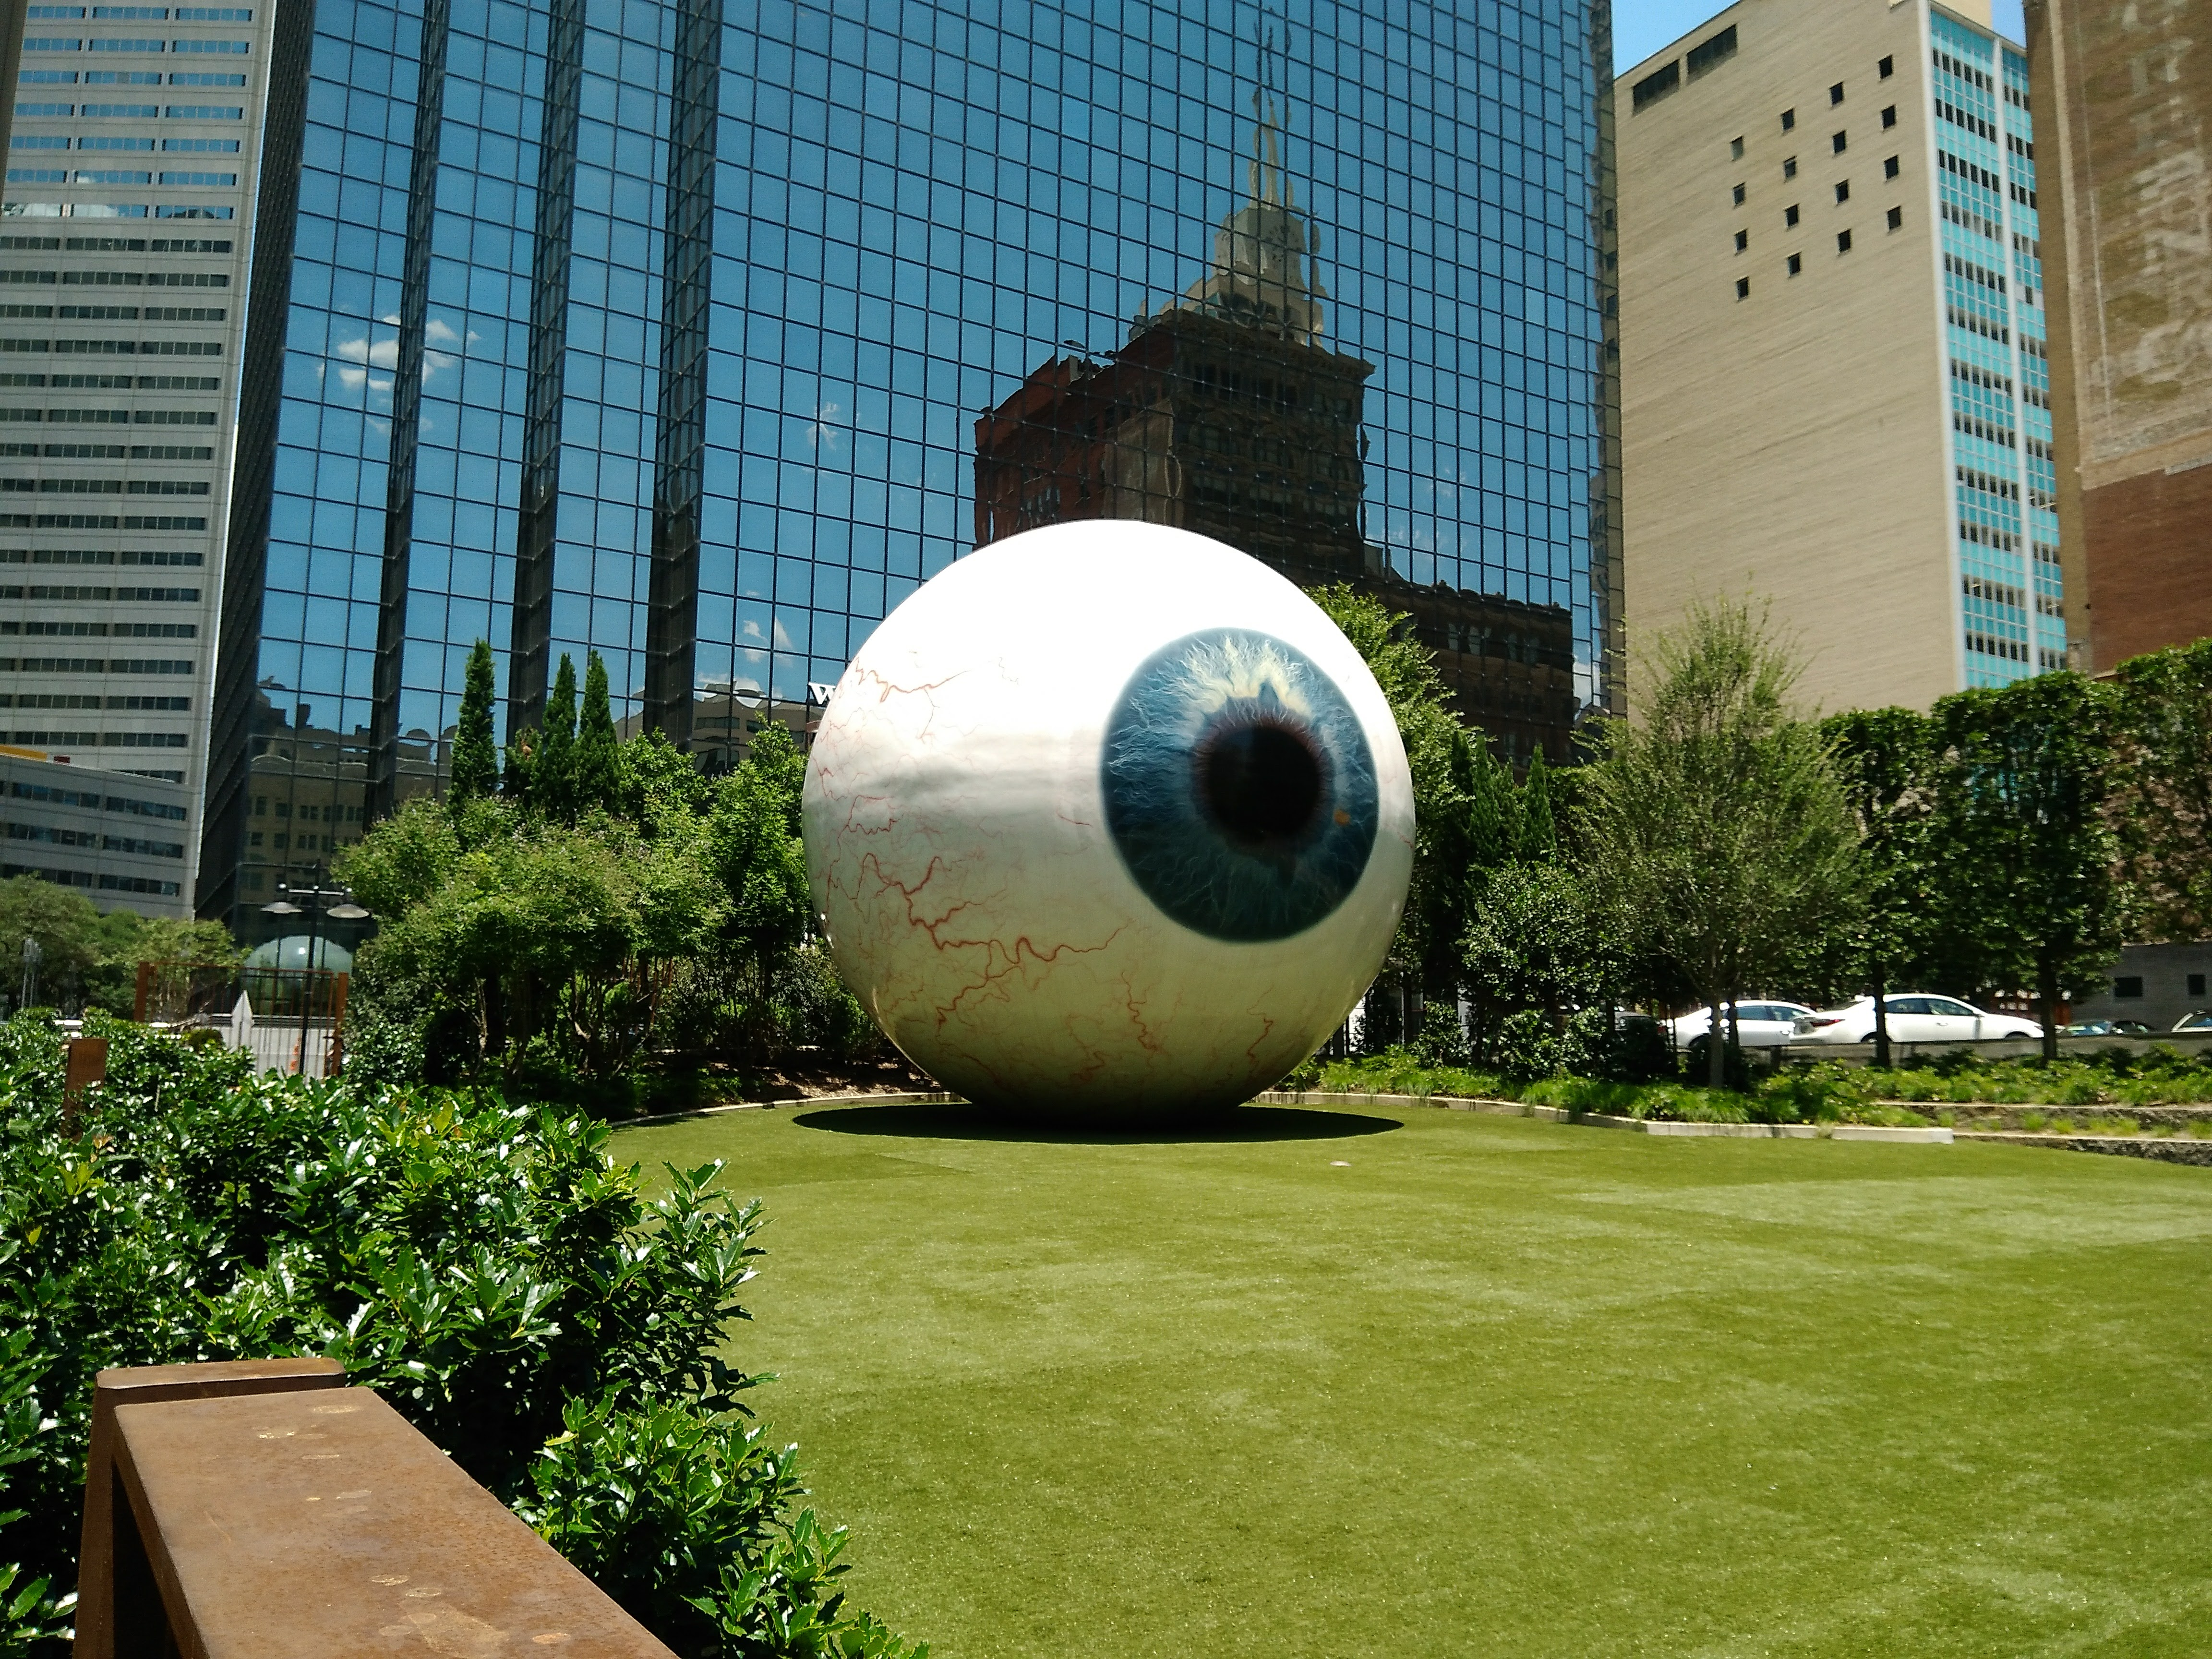 An eyeball of alarming size